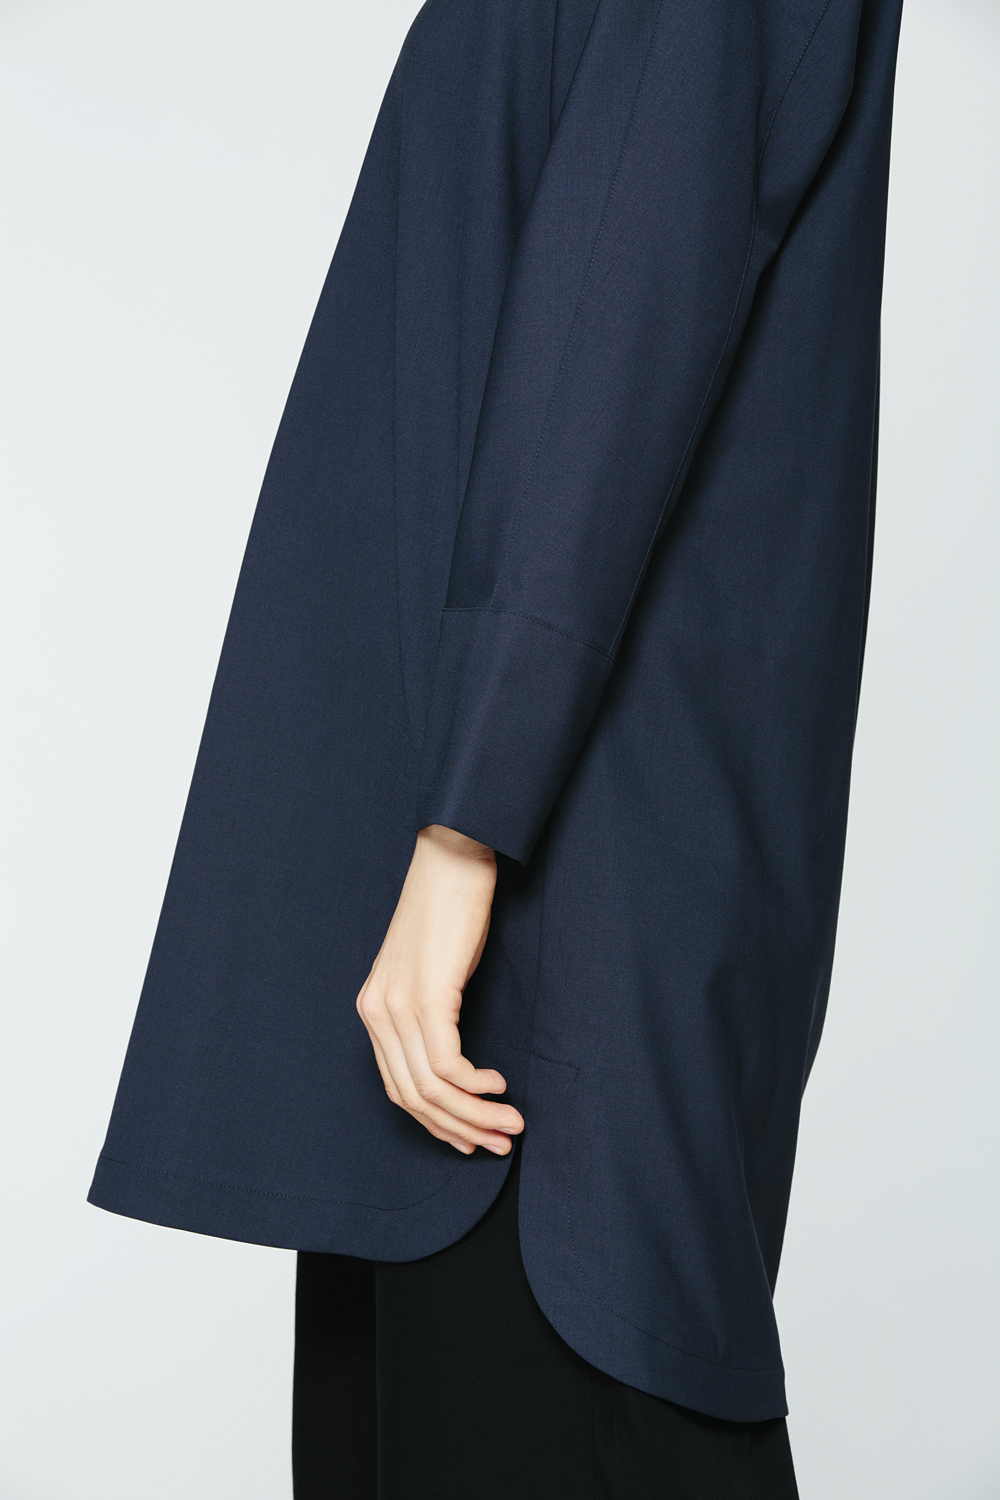 Everlane_WoolShirtDress_AHakan_0922153766.jpg